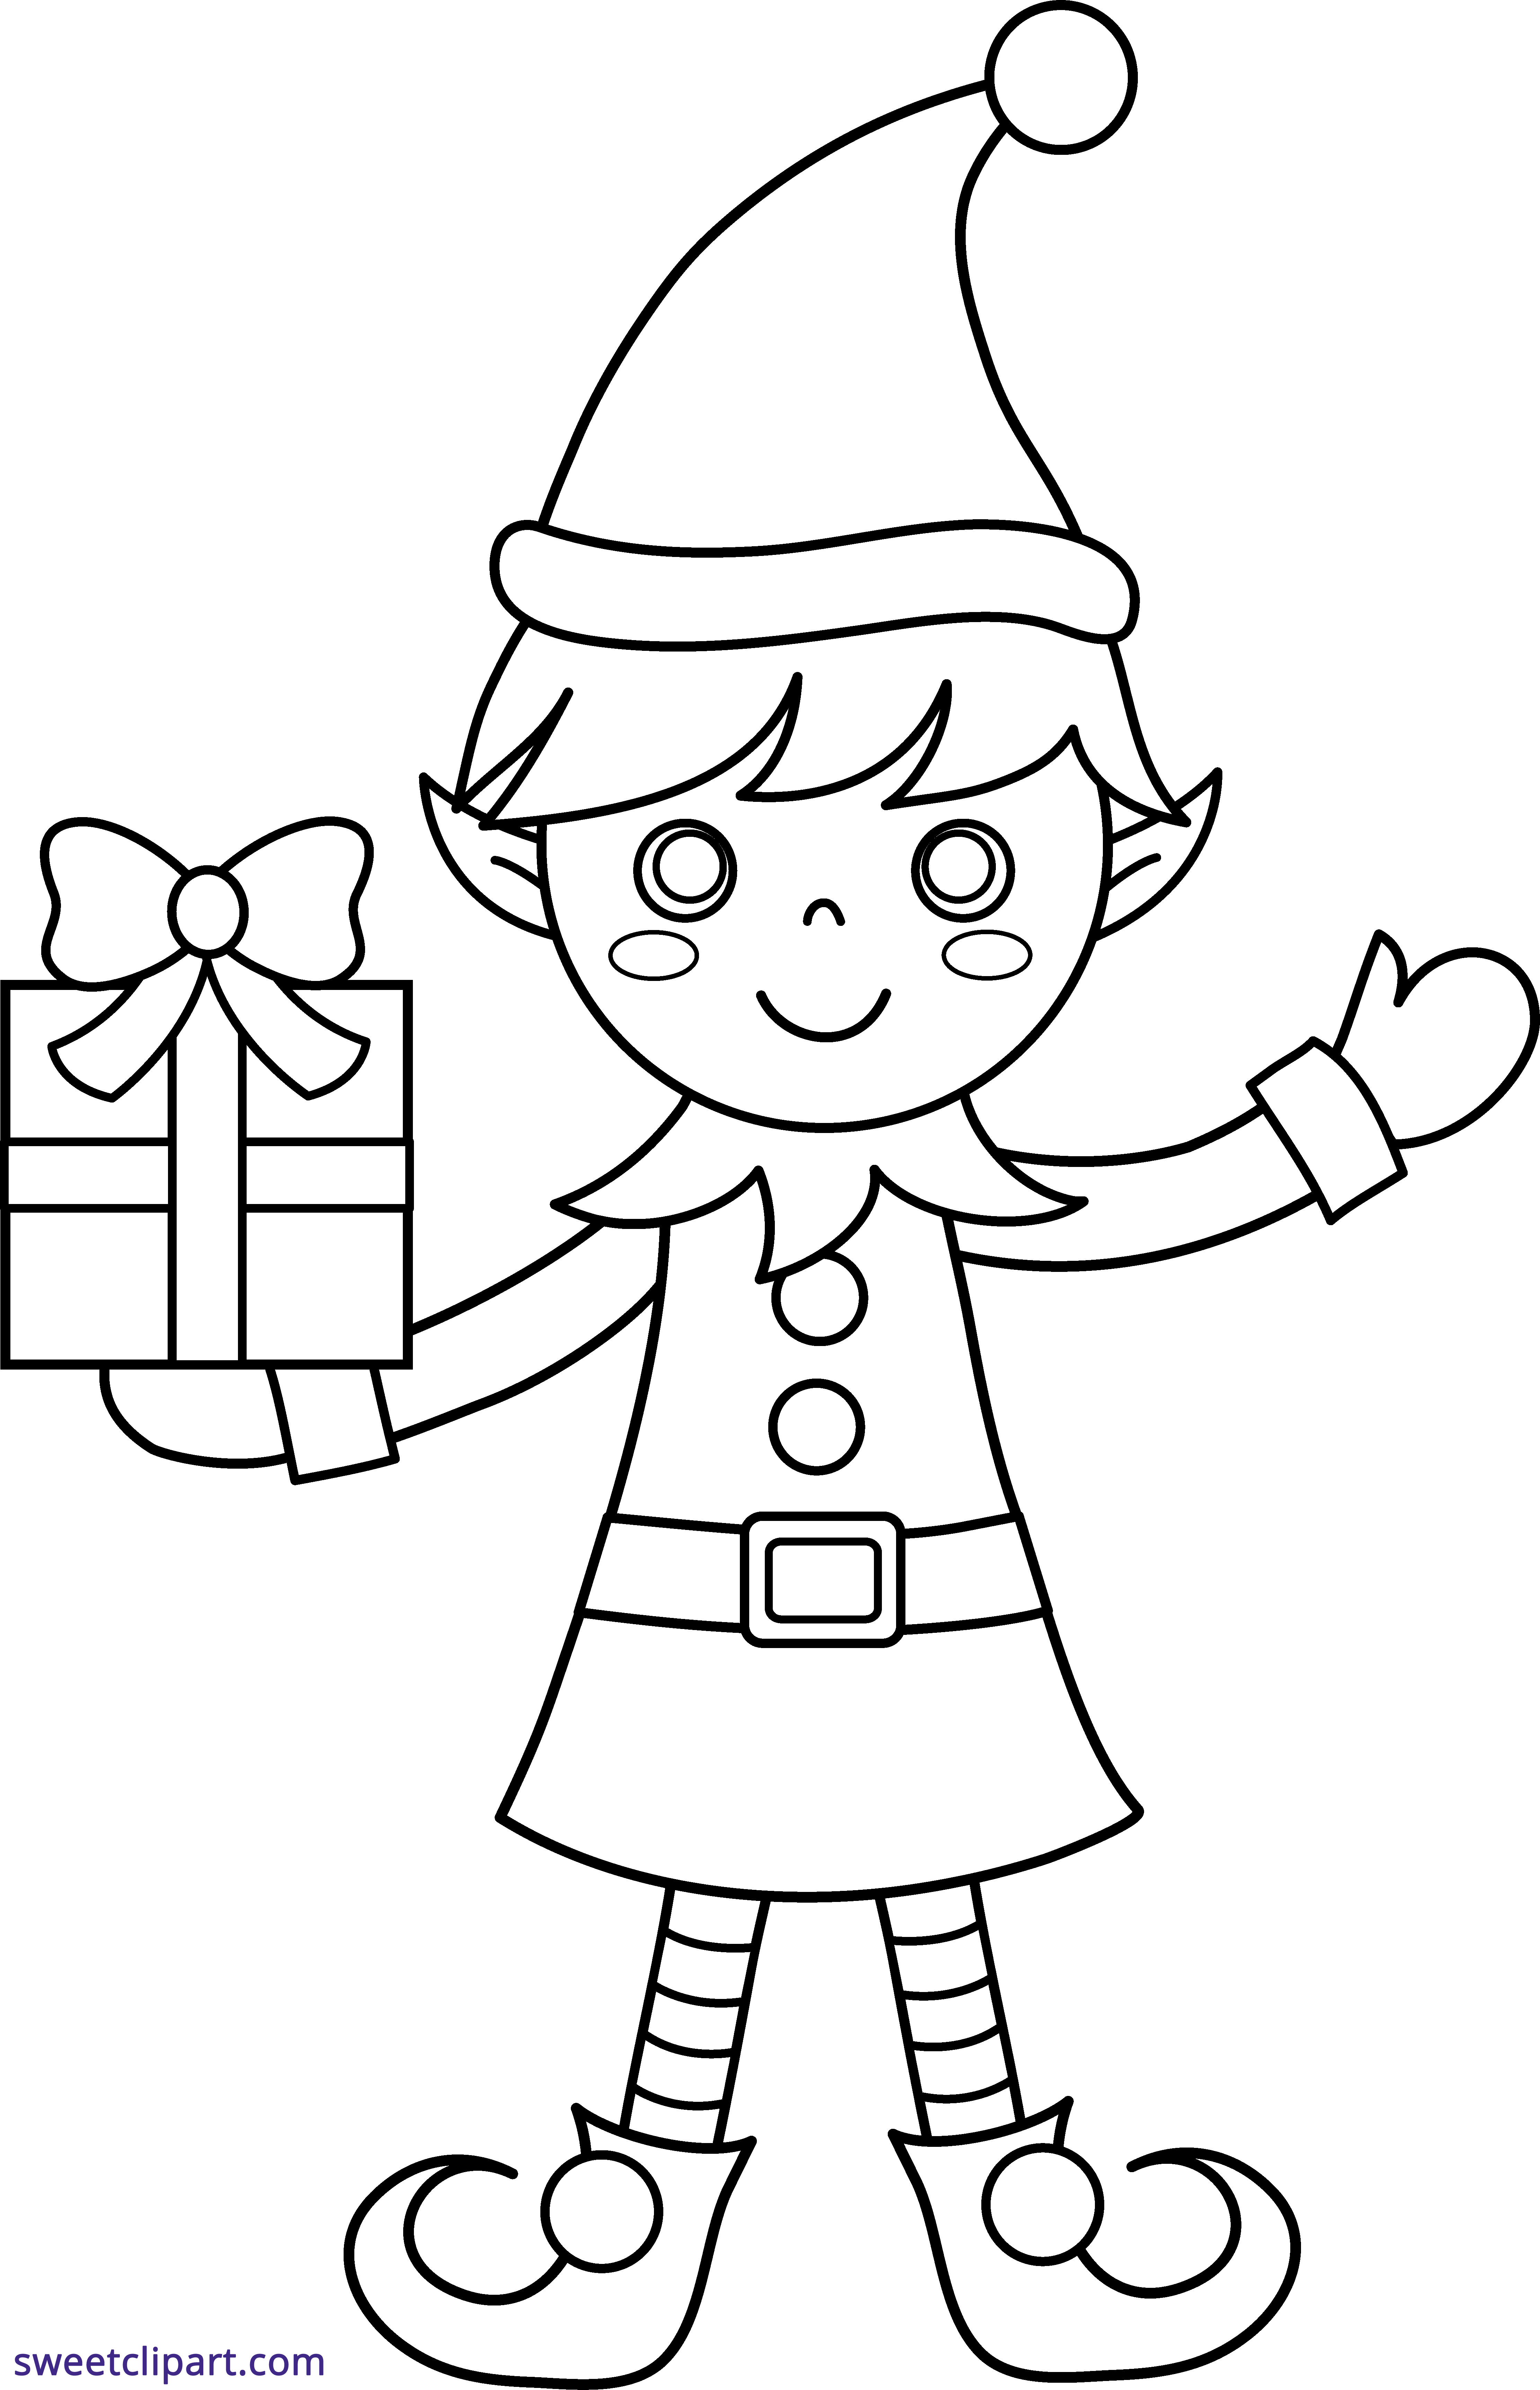 Christmas Elf Coloring Page Clipart - Sweet Clip Art